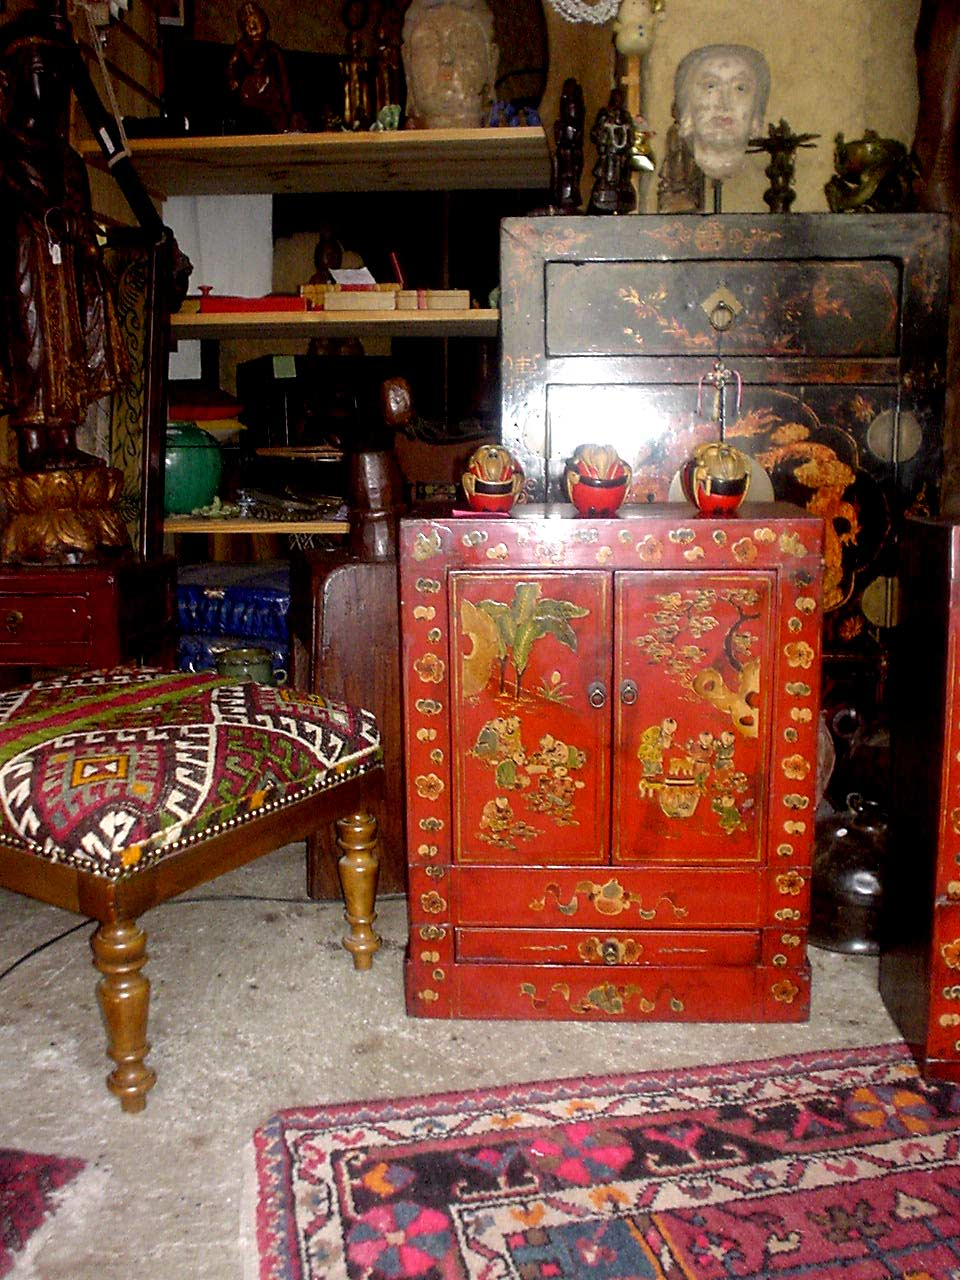 brocante asiatique meuble chinois mobilier asiatique et d coration d 39 asie. Black Bedroom Furniture Sets. Home Design Ideas